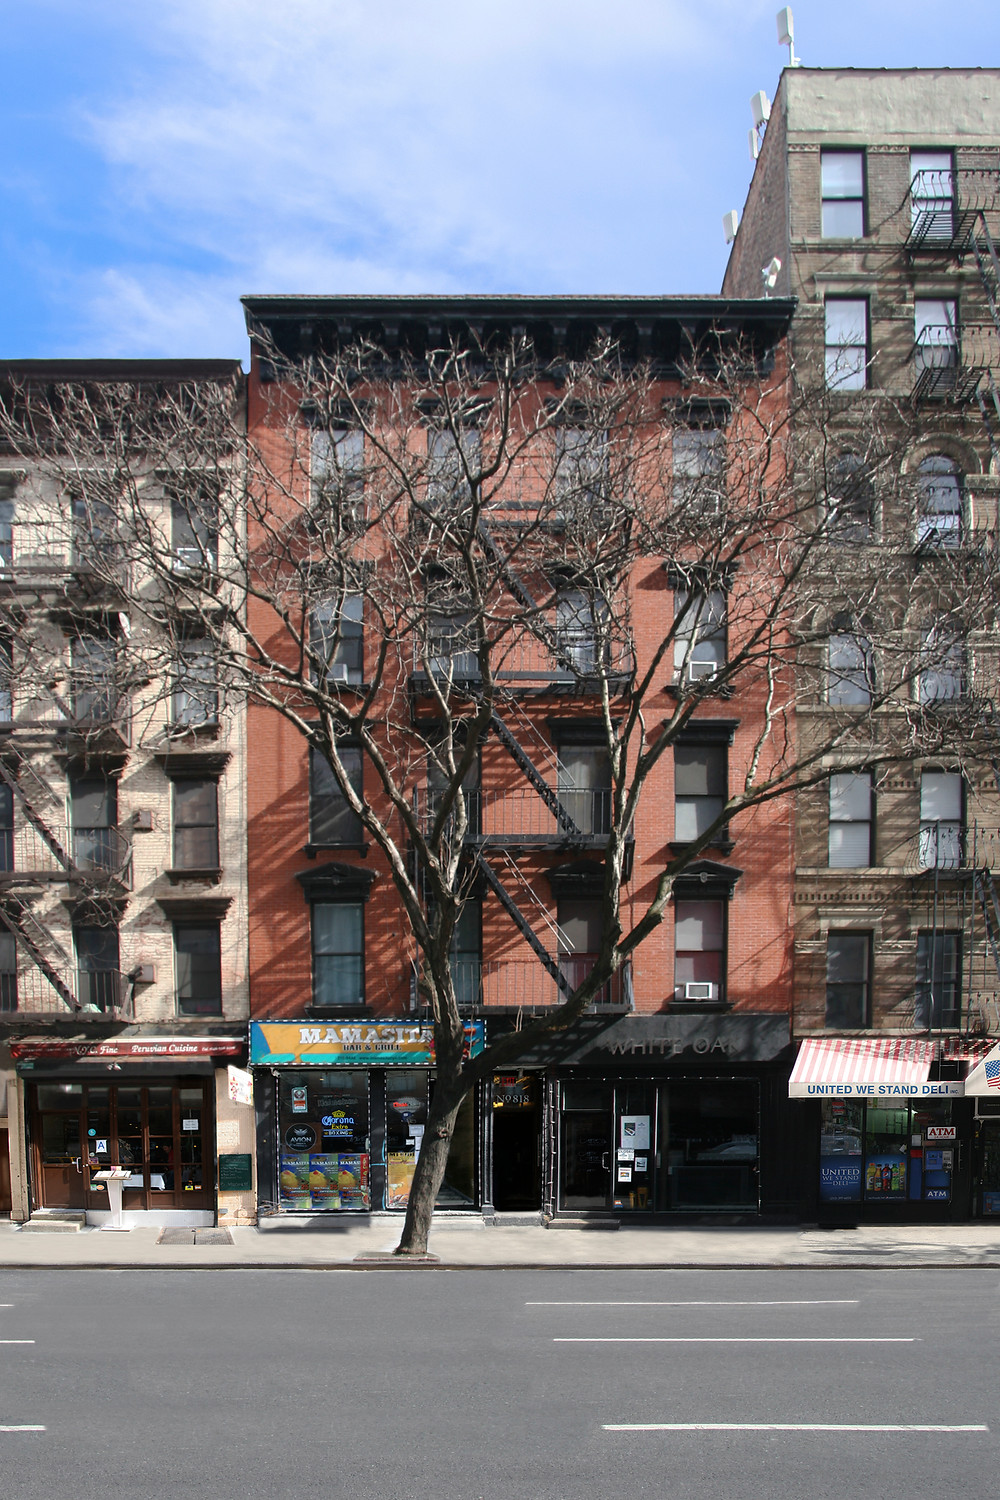 Located at 818 10th Ave. in Manhattan, the 12,330-square-foot building features 12 residential units and two restaurants.